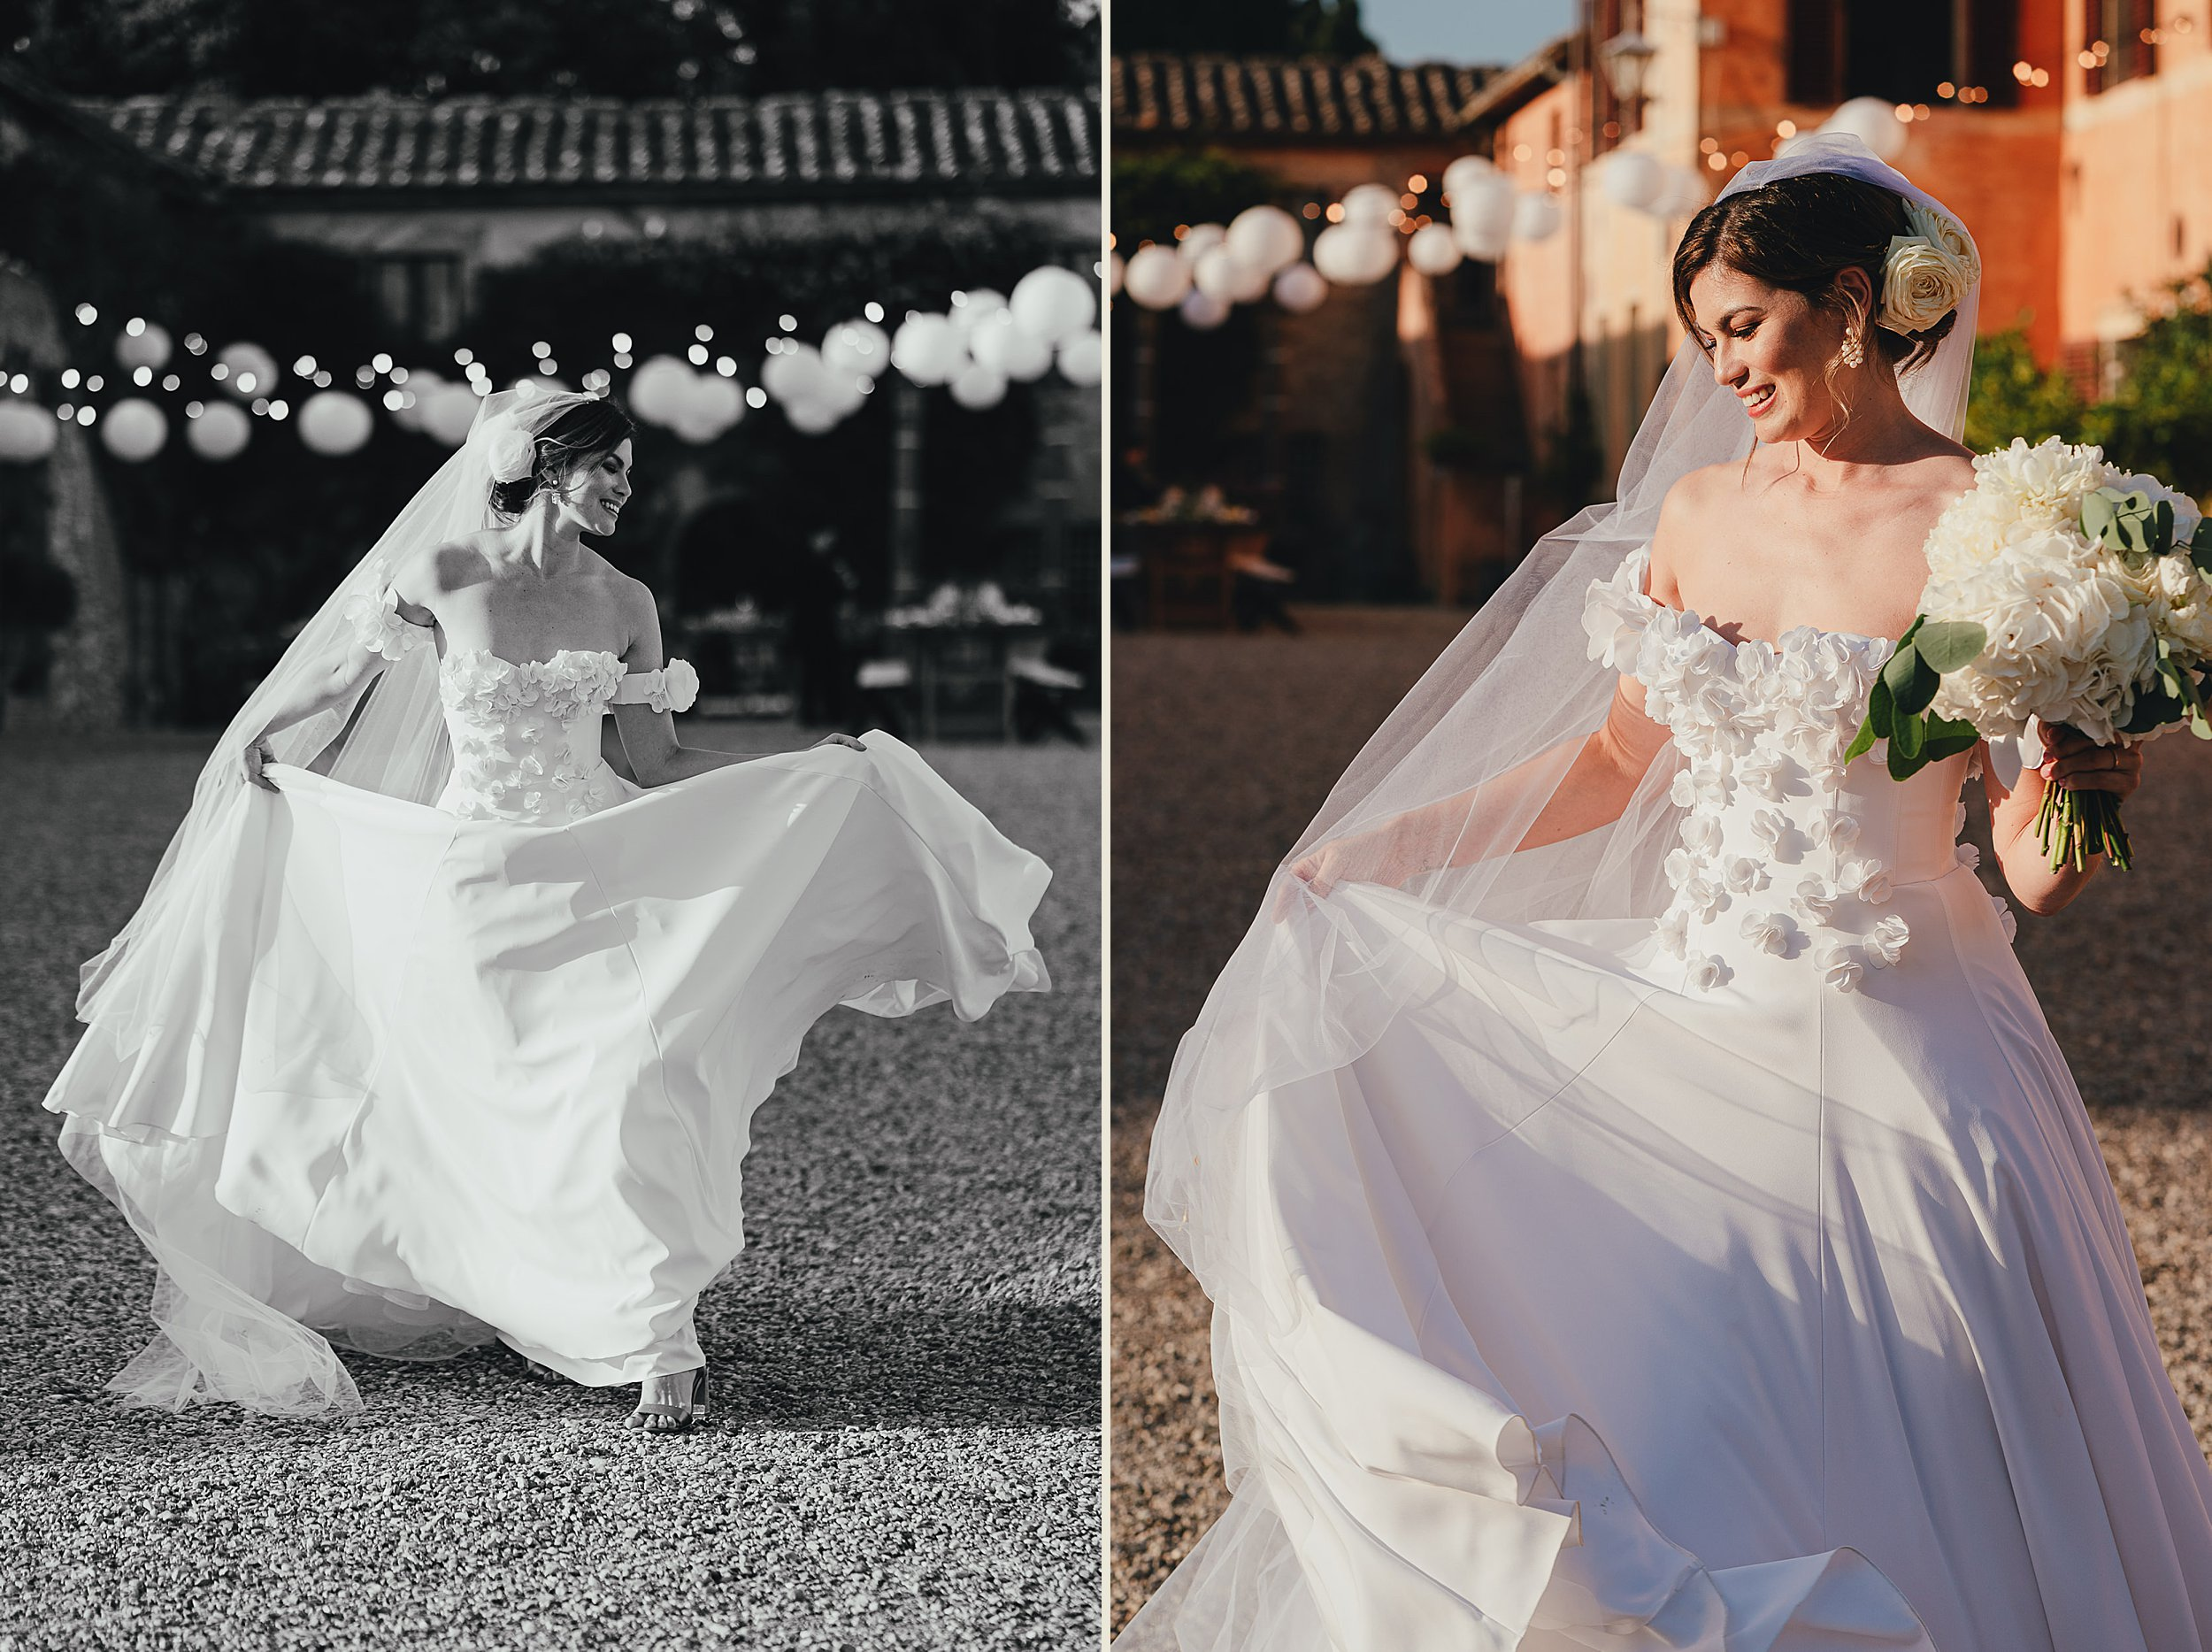 Tuscan Villa Wedding - Portraits of the Bride dancing at Villa Catignano